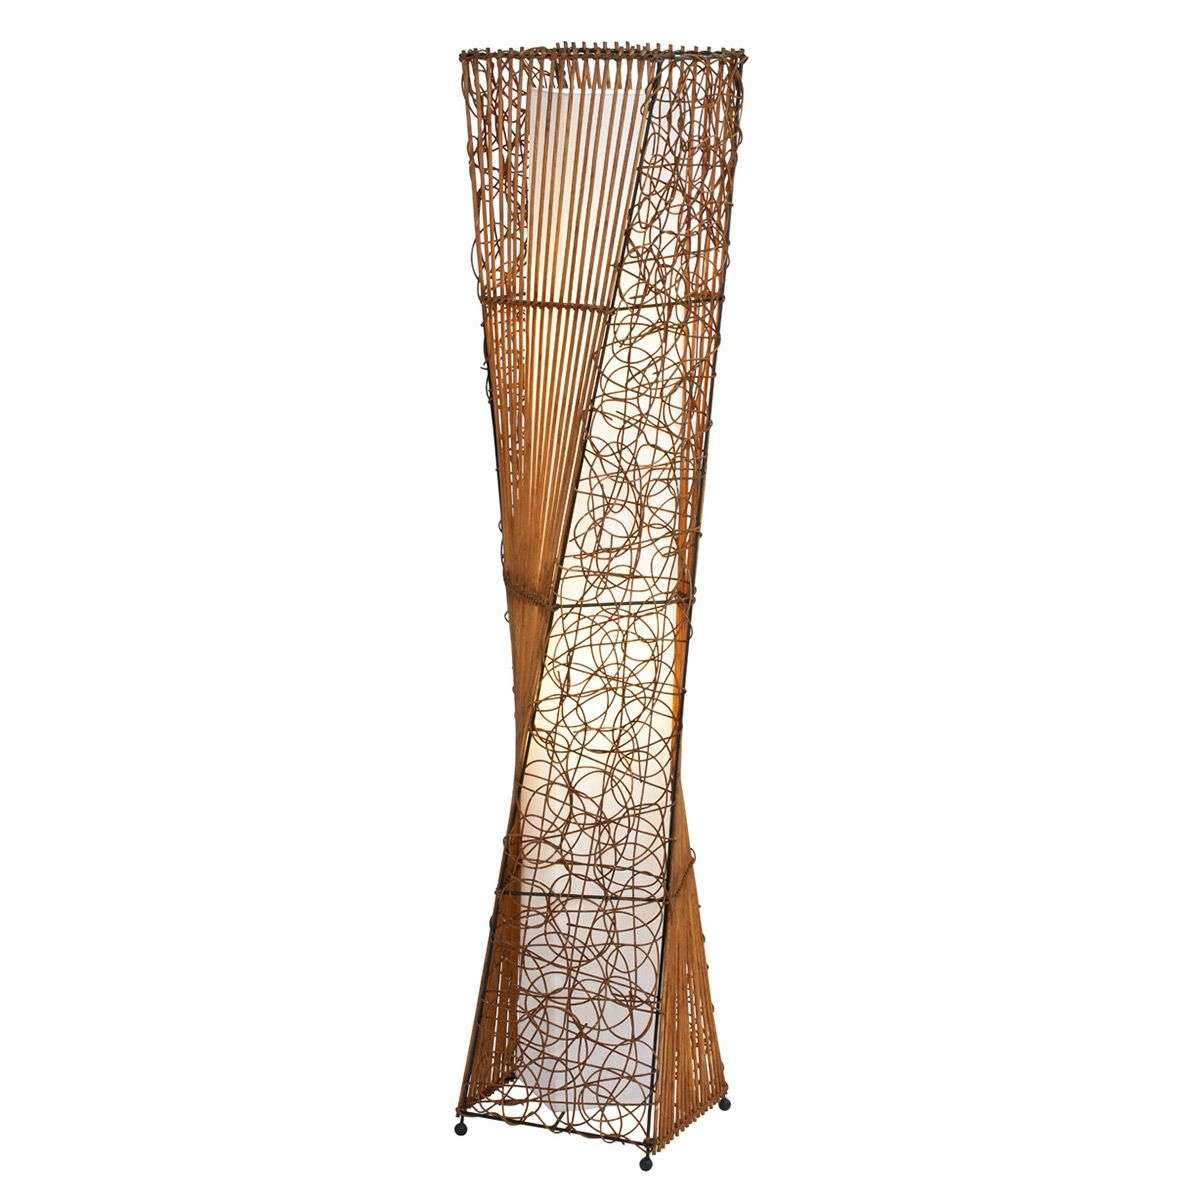 ZIMBO floor lamp made of rattan-7007399-31